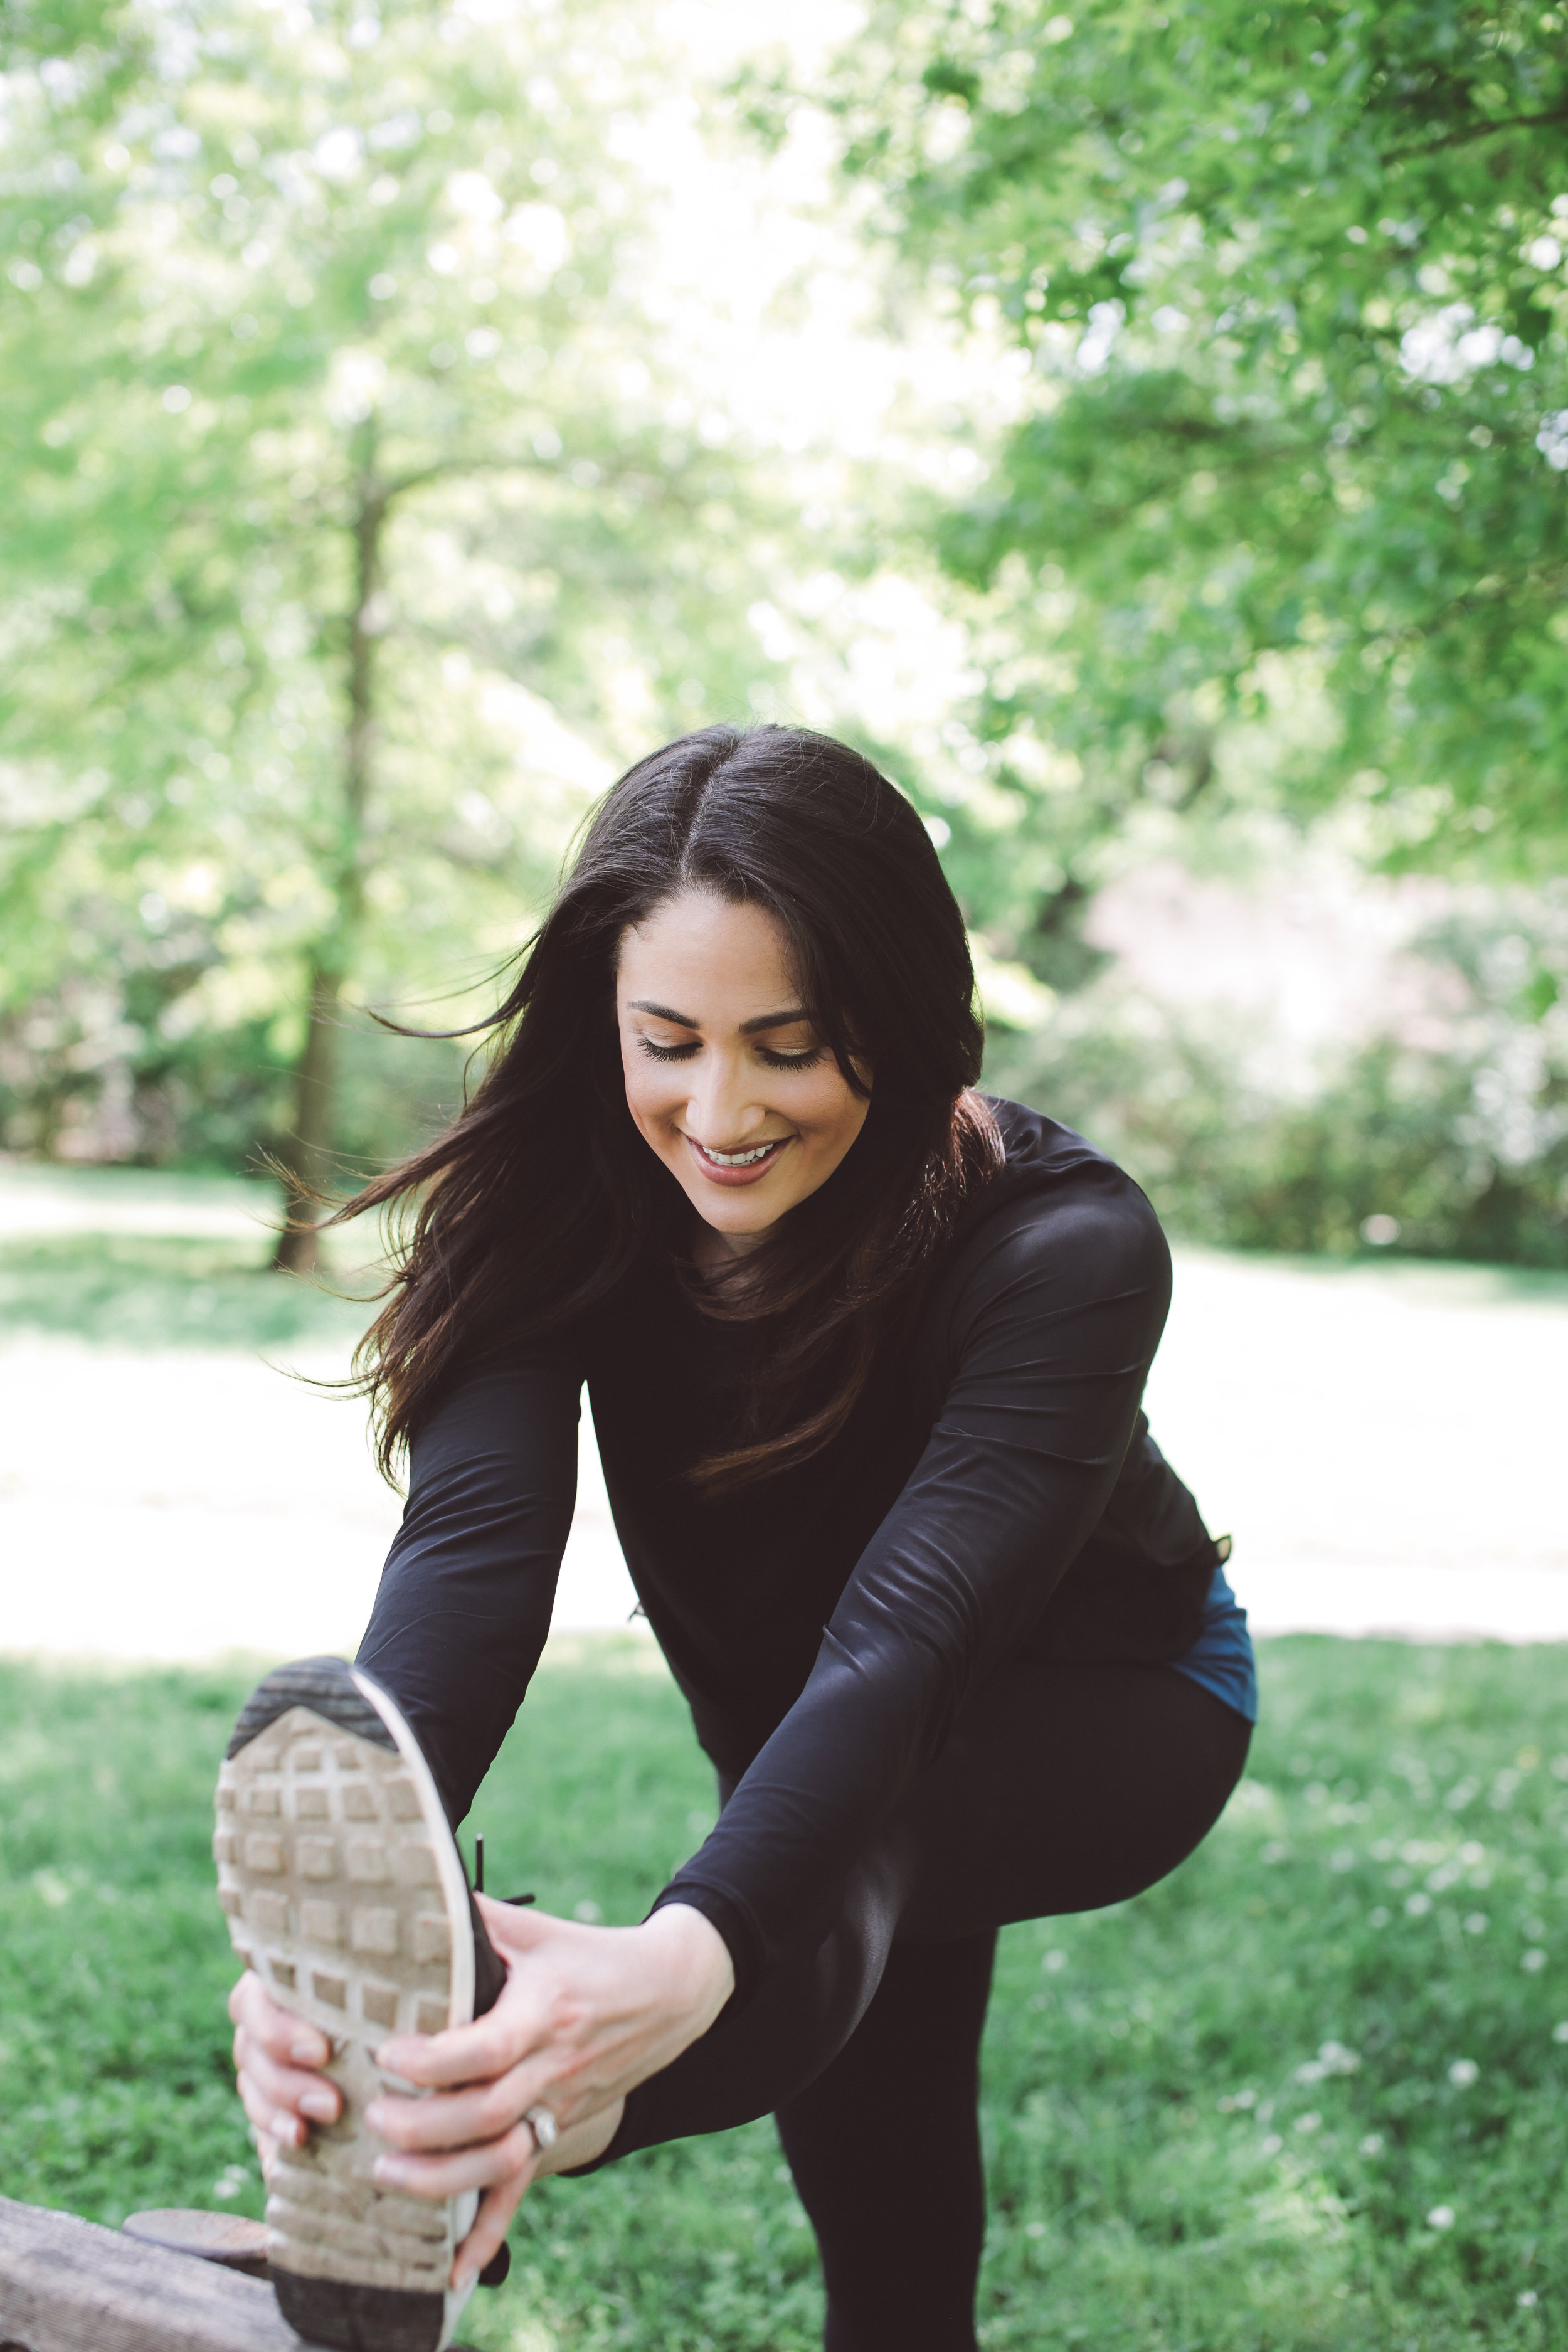 A No Equipment Necessary Park Workout   Jennifer Diaz   Body Weight Workout   Outdoor Workout   8 exercises you can do anywhere   How to create a habit of exercise   The best type of exercise